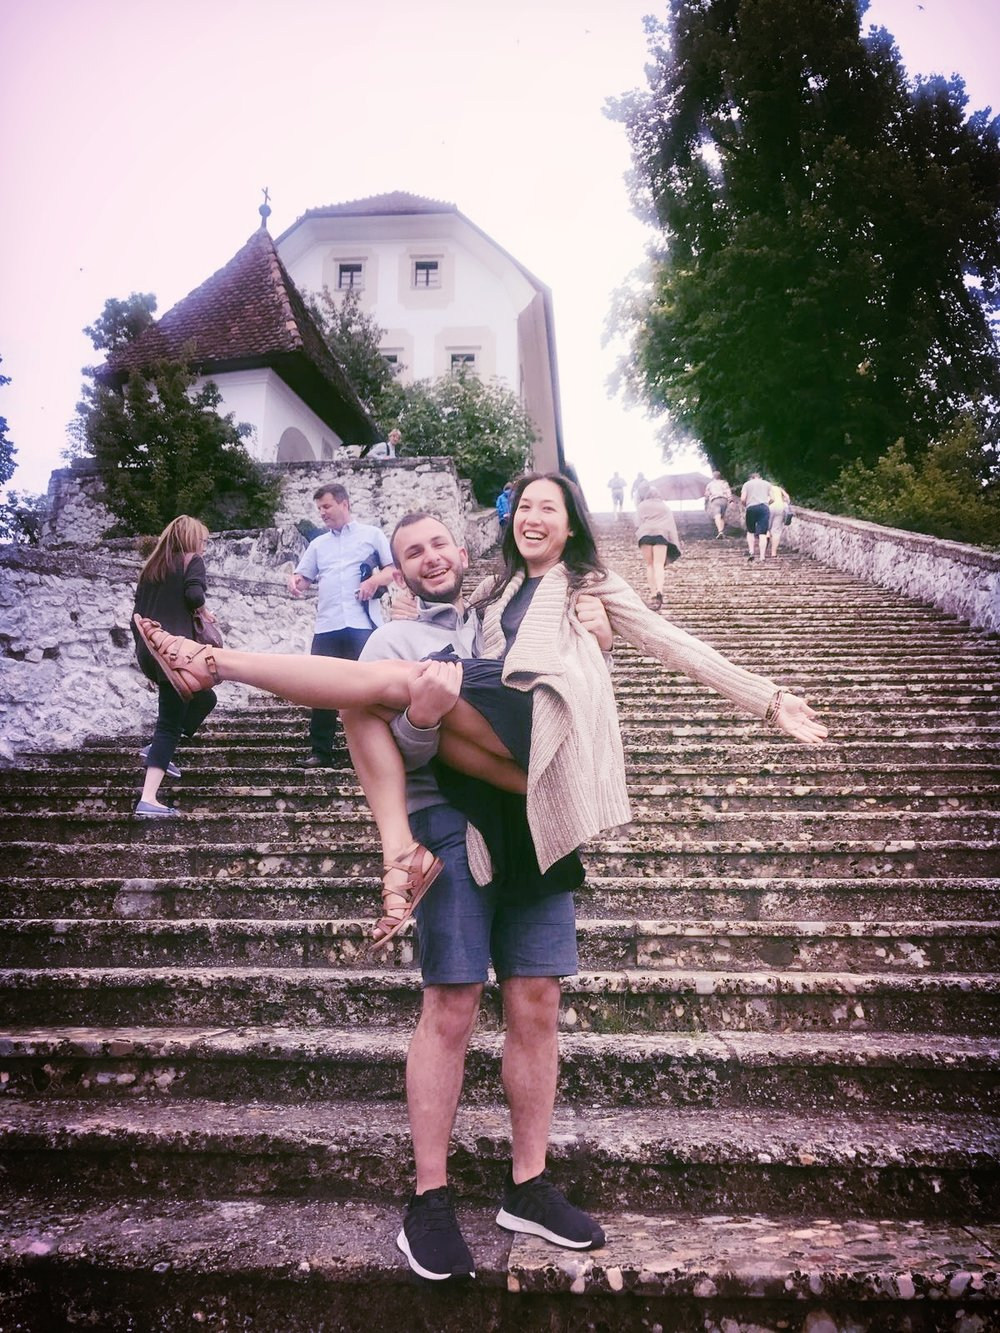 According to Slovenian wedding traditions, the groom must climb up 99 steps to the Church of the Assumption while his bride must stay quiet the entire time. I tested this out with my friend Rami and he lasted only 10 steps while I couldn't stop giggling the entire time. It was an epic fail on our part.